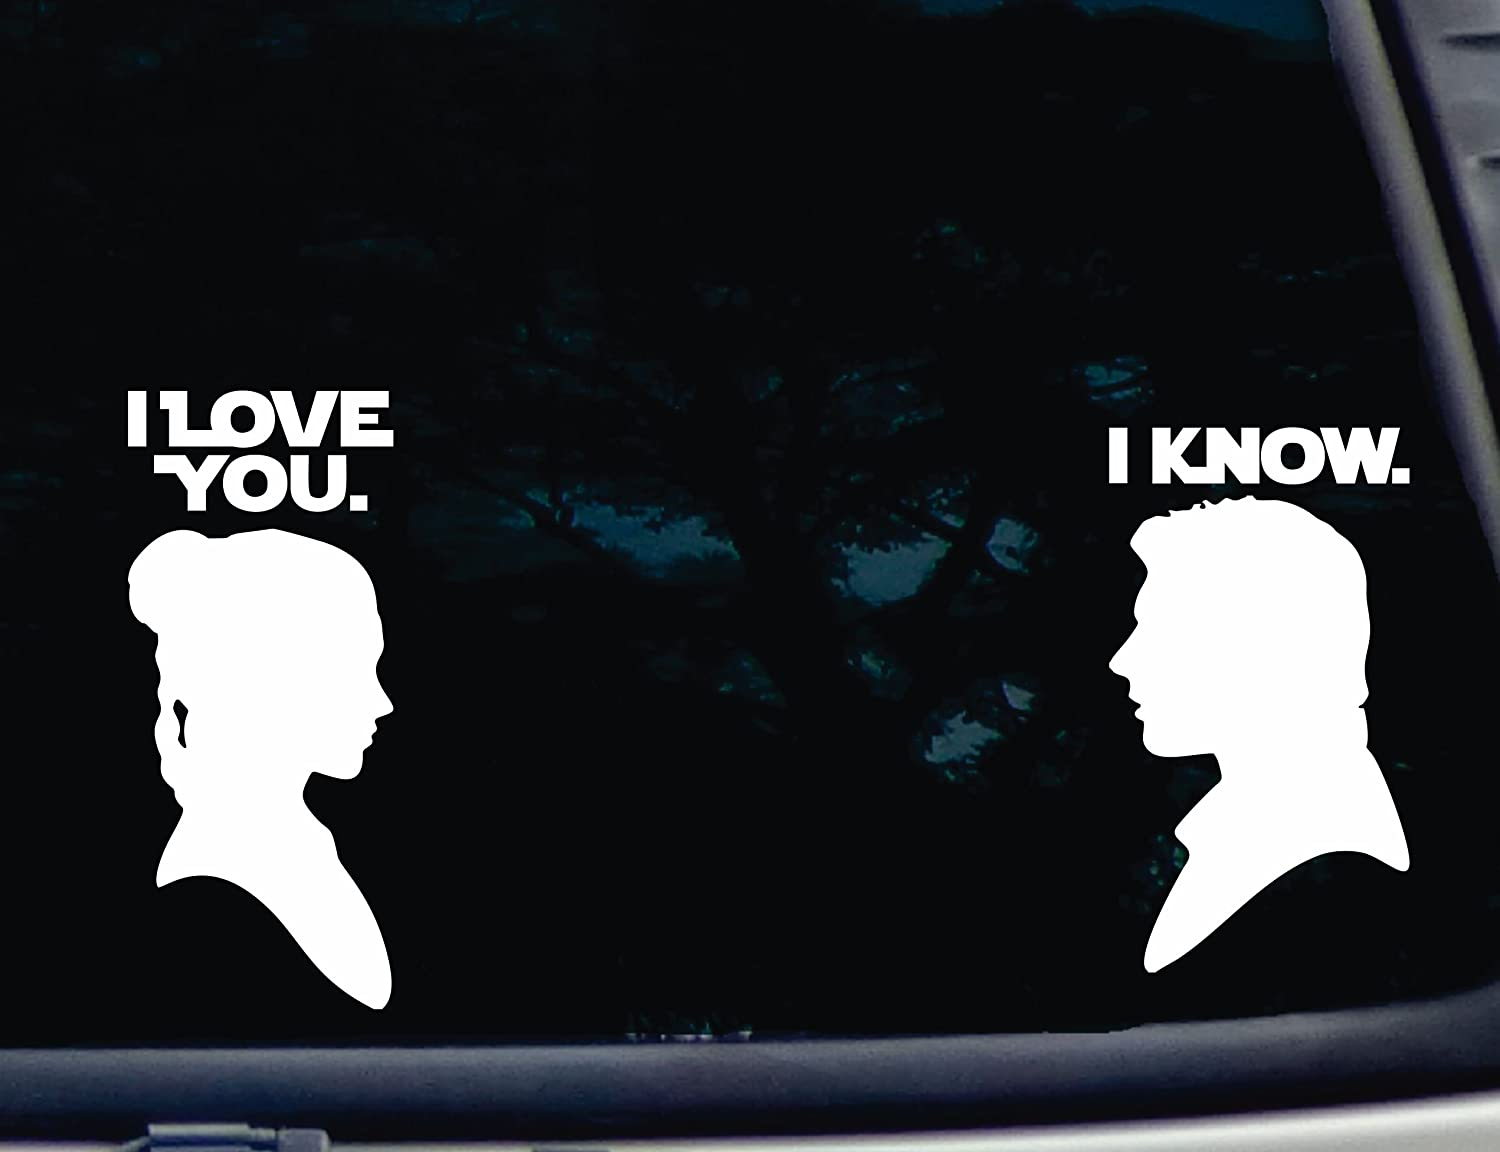 I Love You - I Know - Various Sized die Cut Vinyl Decals for Windows, Cars, Trucks, Tool Boxes, laptops, MacBook - virtually Any Hard, Smooth Surface. NOT Printed!